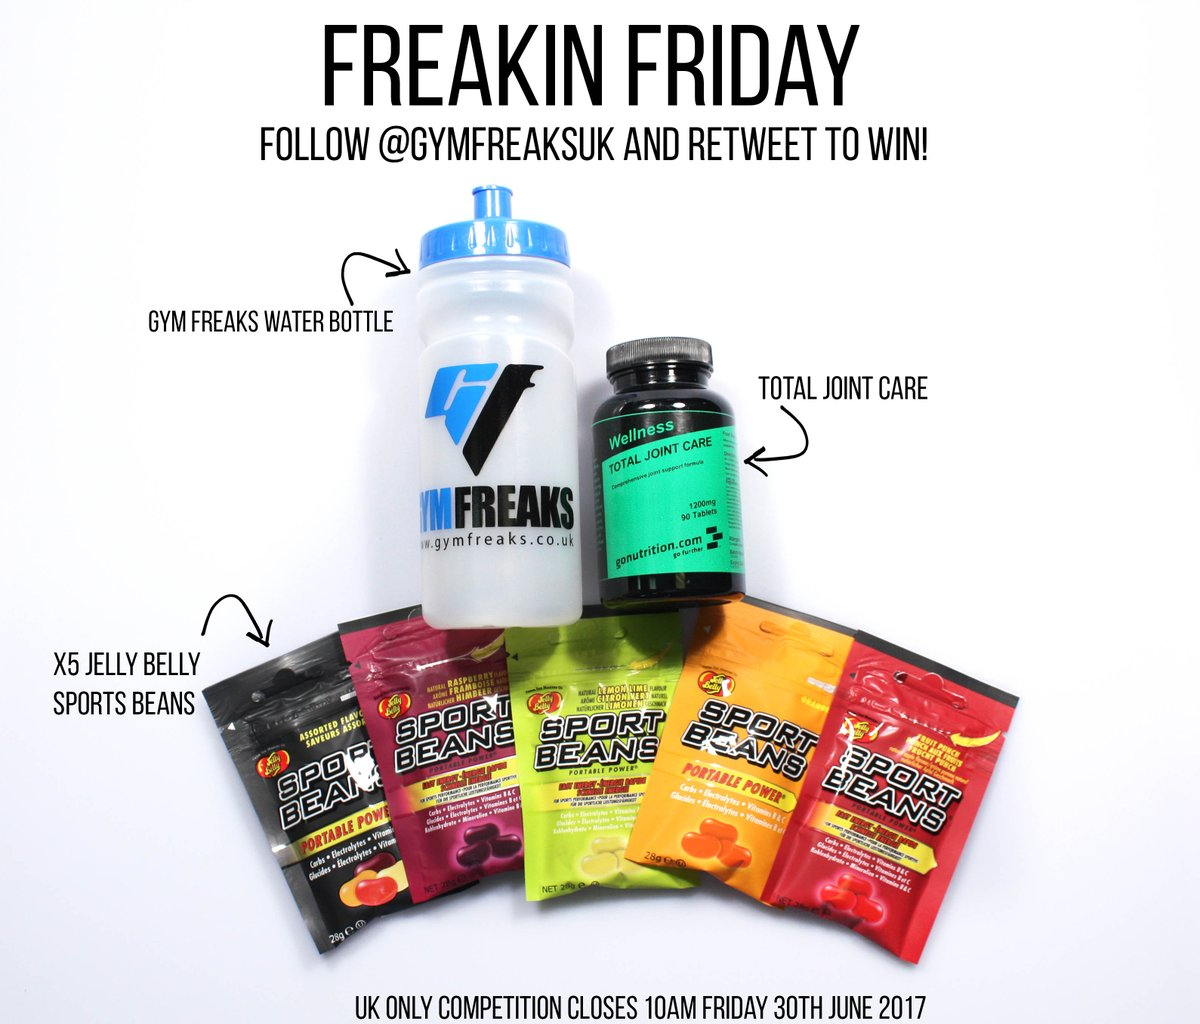 Grab some #mondaymotivation and follow and RT! #competition #win #prize #fitness #fitfam #gymlife #gymfreak #exercise #energy #workout #gym<br>http://pic.twitter.com/ztt9Z7nerb